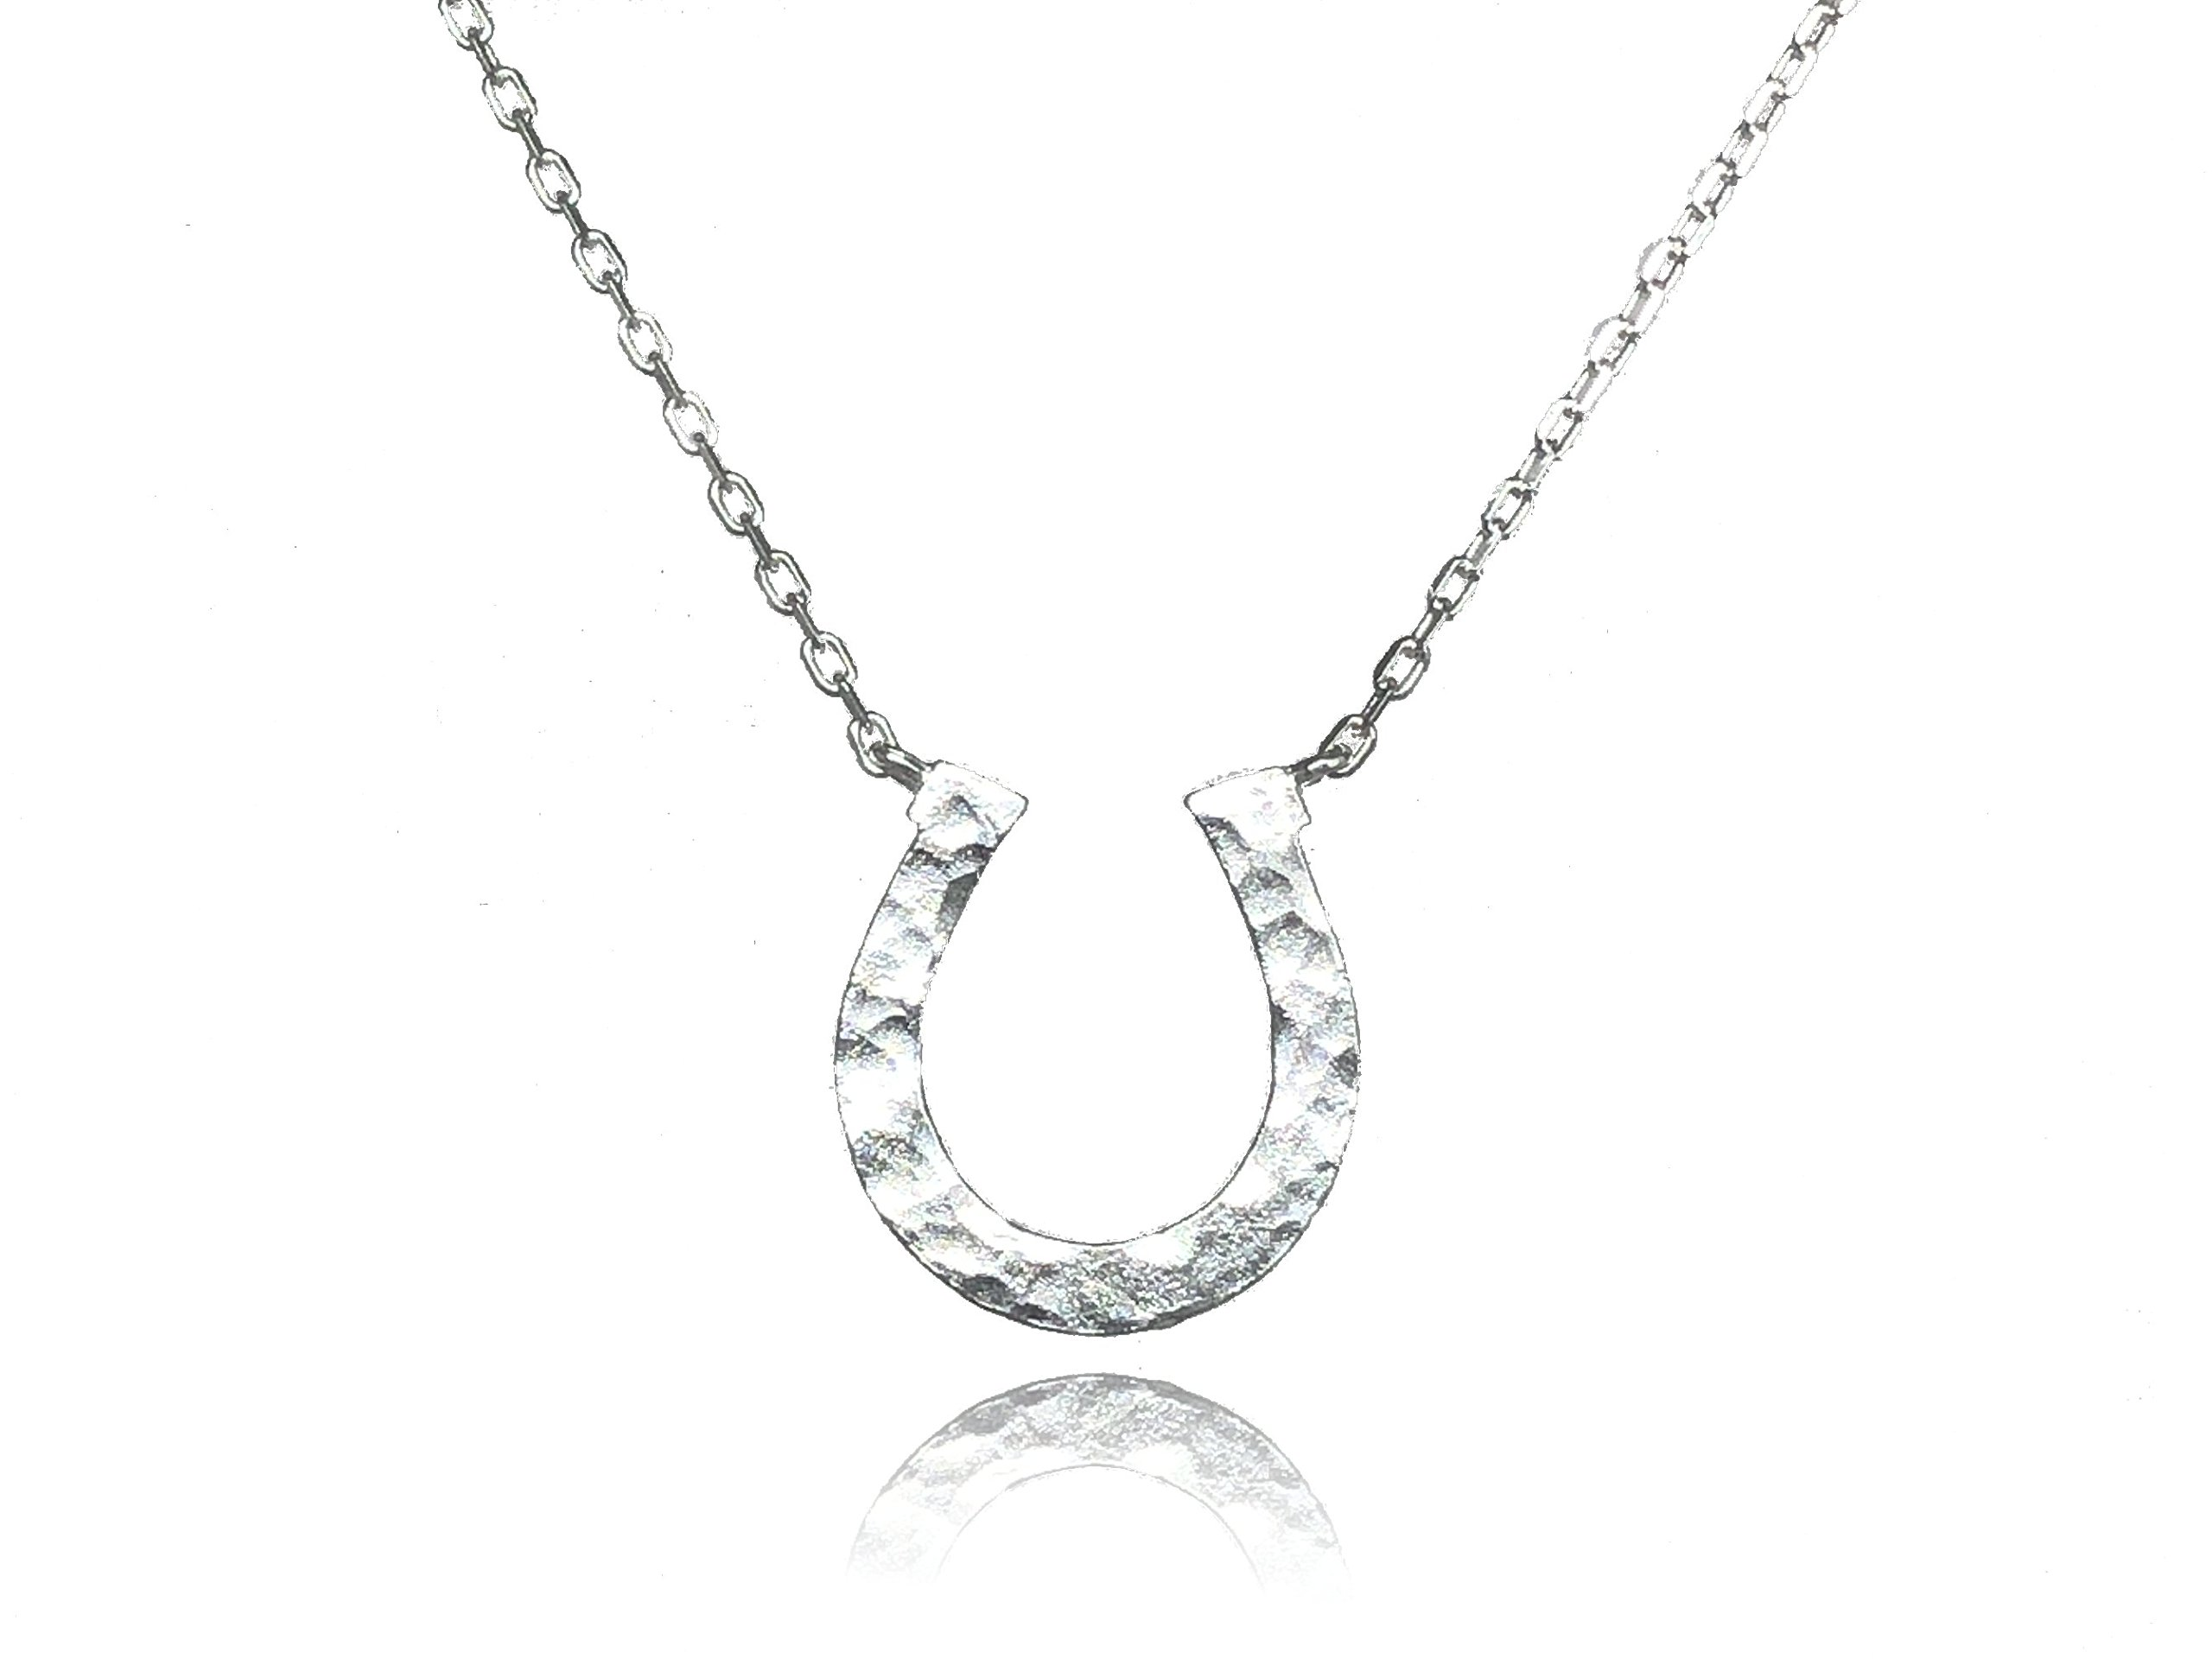 Dote Lucky Horseshoe Pendant Genuine .925 Sterling Silver Hammered Necklace 16-18 Adjustable Chain